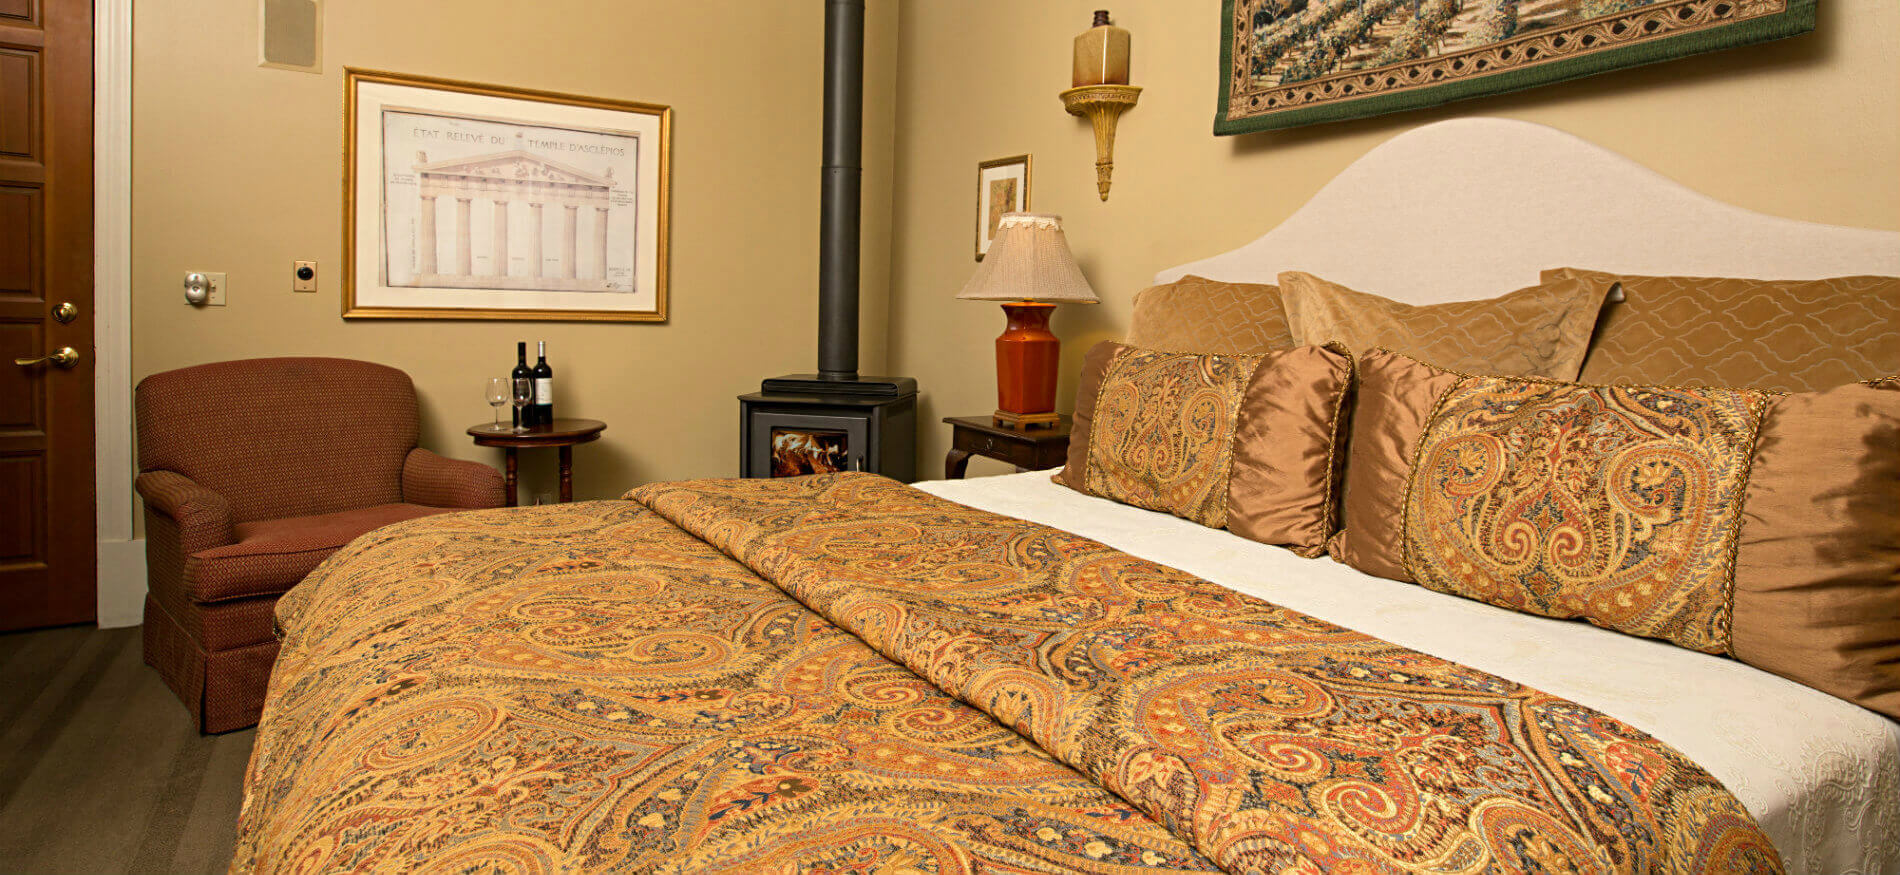 Bed with gold, blue, red, brown paisley pattern comforter, tan walls, red chair with small table, and wood stove